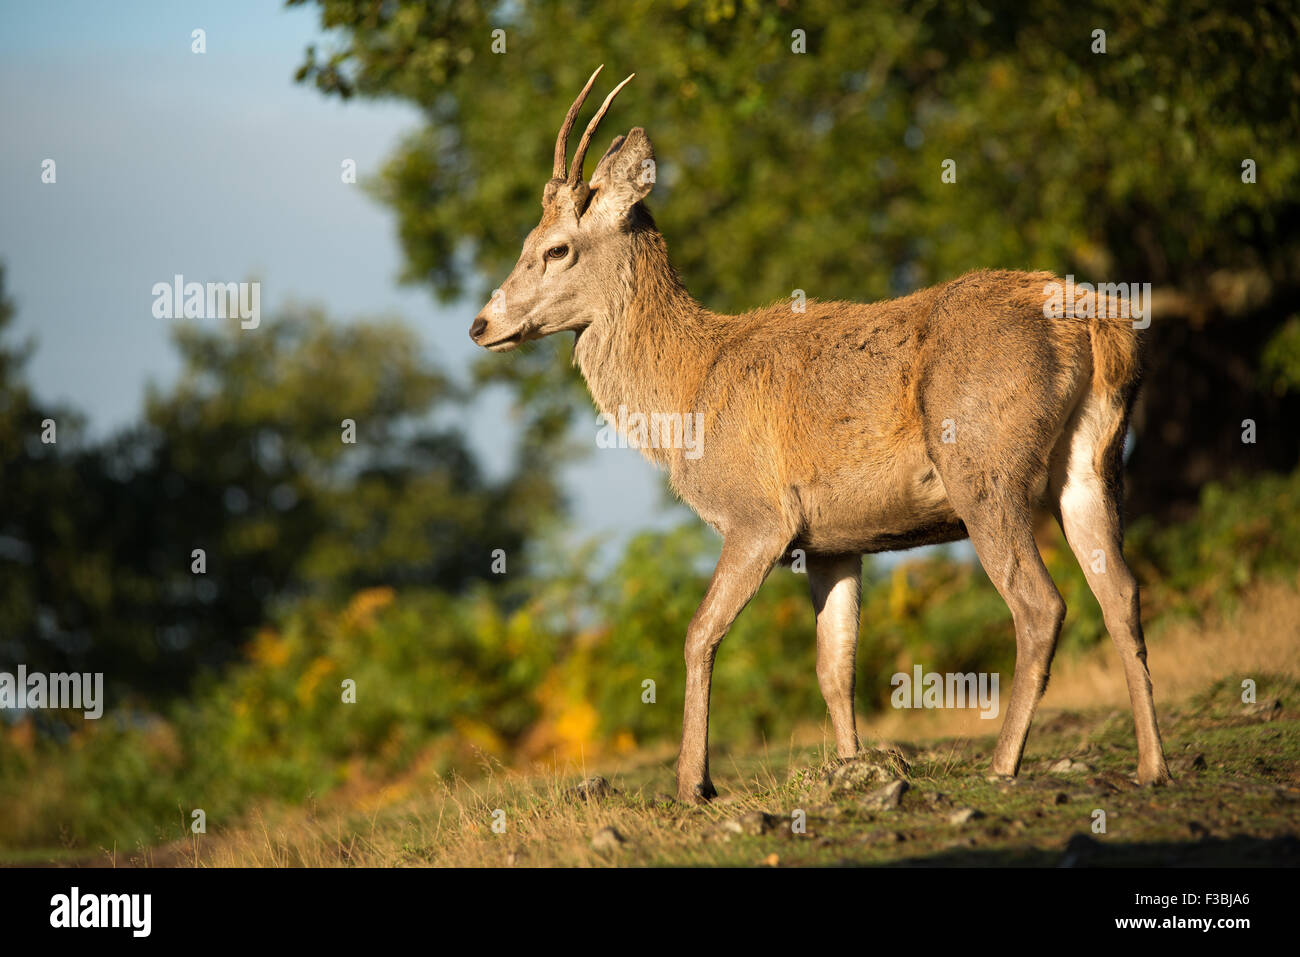 Young red deer stag in early morning light. - Stock Image